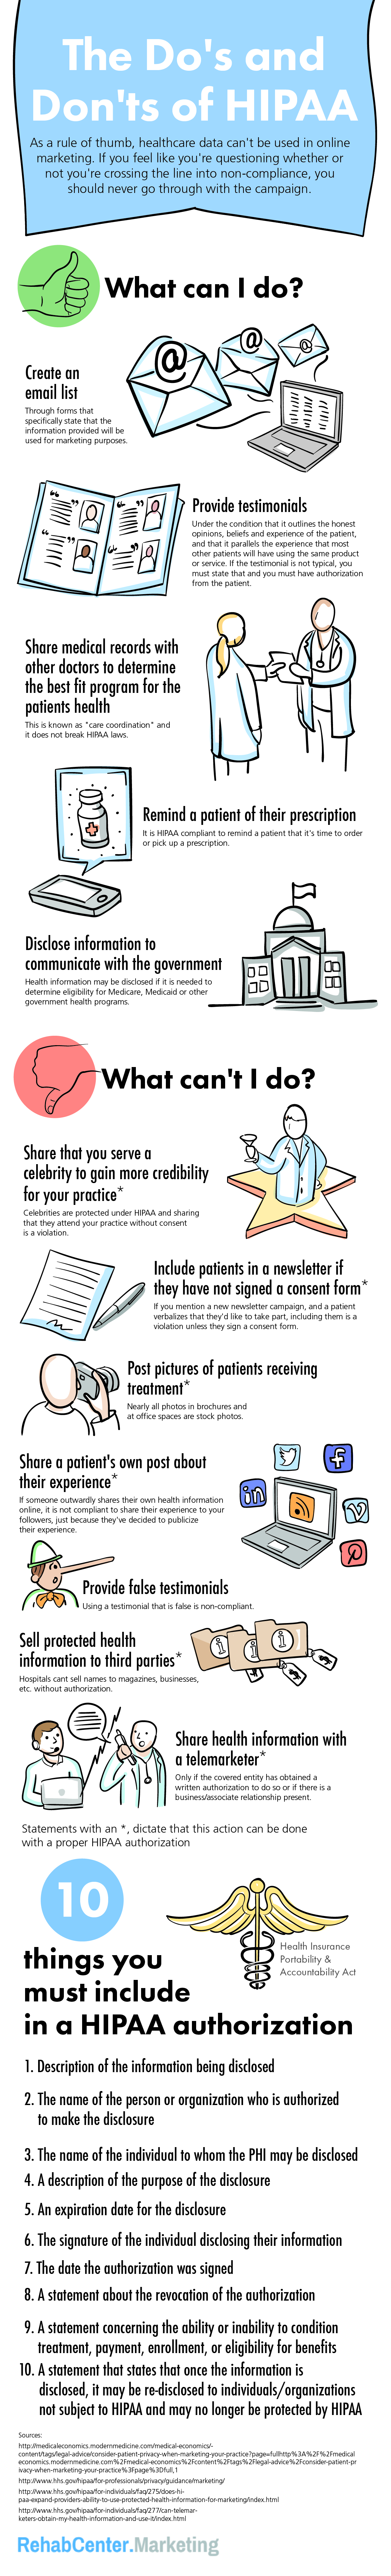 Infographic: HIPAA Do's and Don'ts